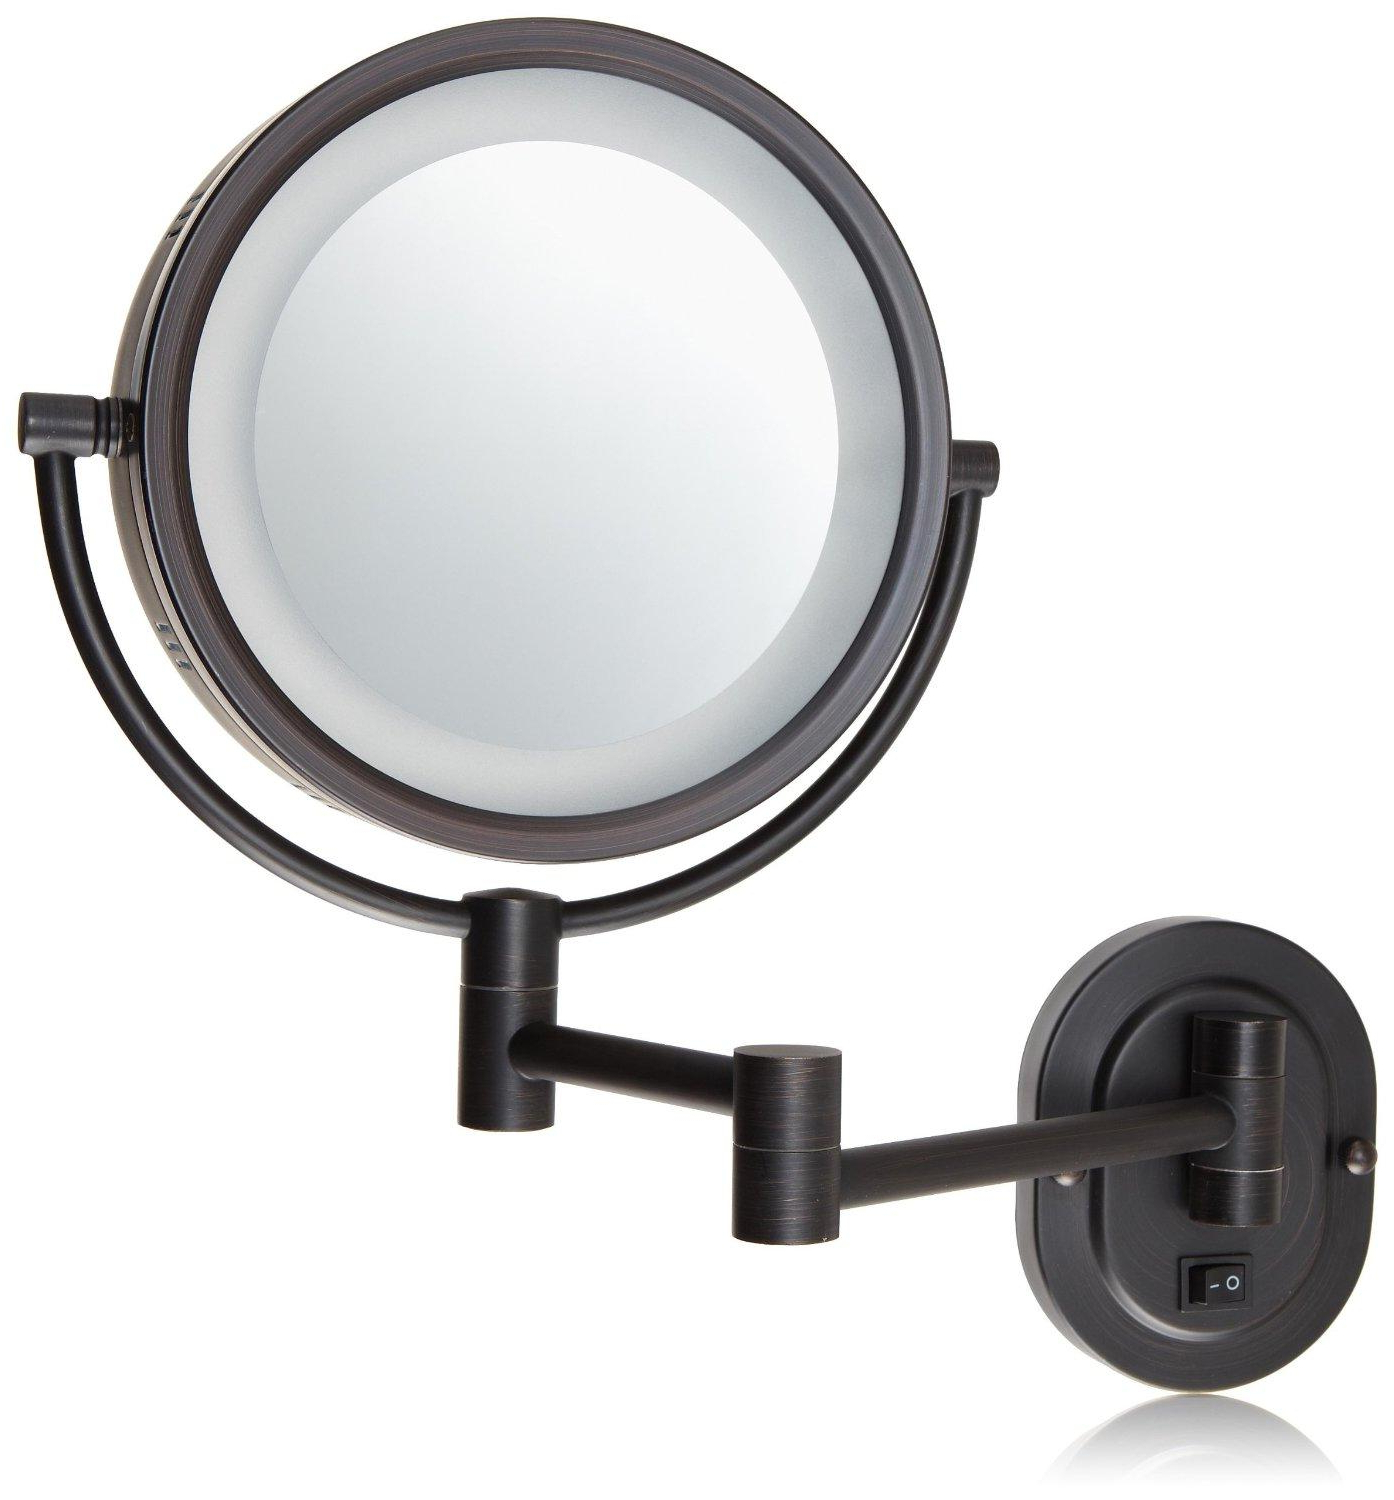 Lighted Vanity Wall Mirrors Regarding Most Up To Date Jerdon Hl65Bzd 8 Inch Lighted Direct Wire Wall Mount Makeup Mirror With 5X Magnification, Bronze Finish (View 6 of 20)